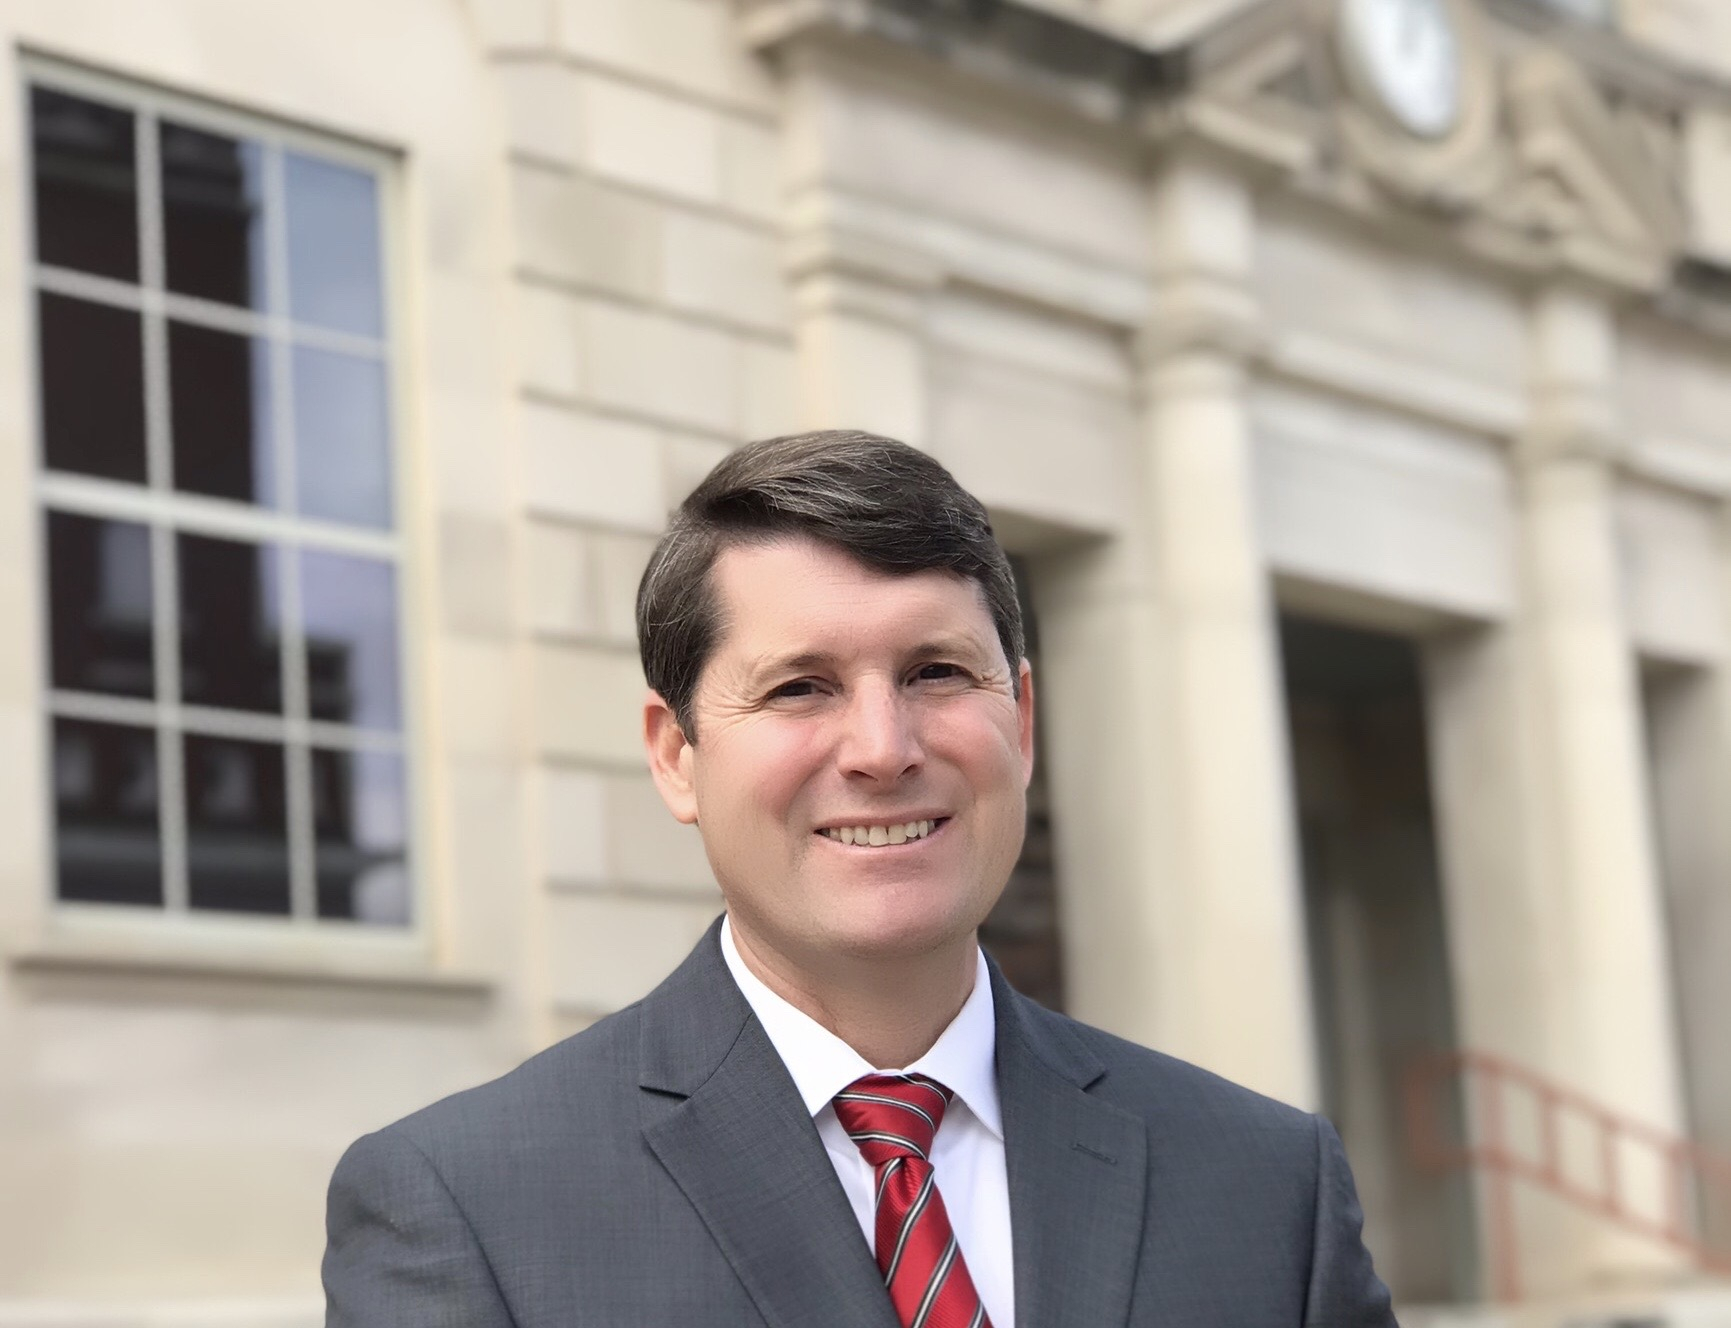 Lane Announces Candidacy For State Court Judge pertaining to Lane County Circut Coirt Days